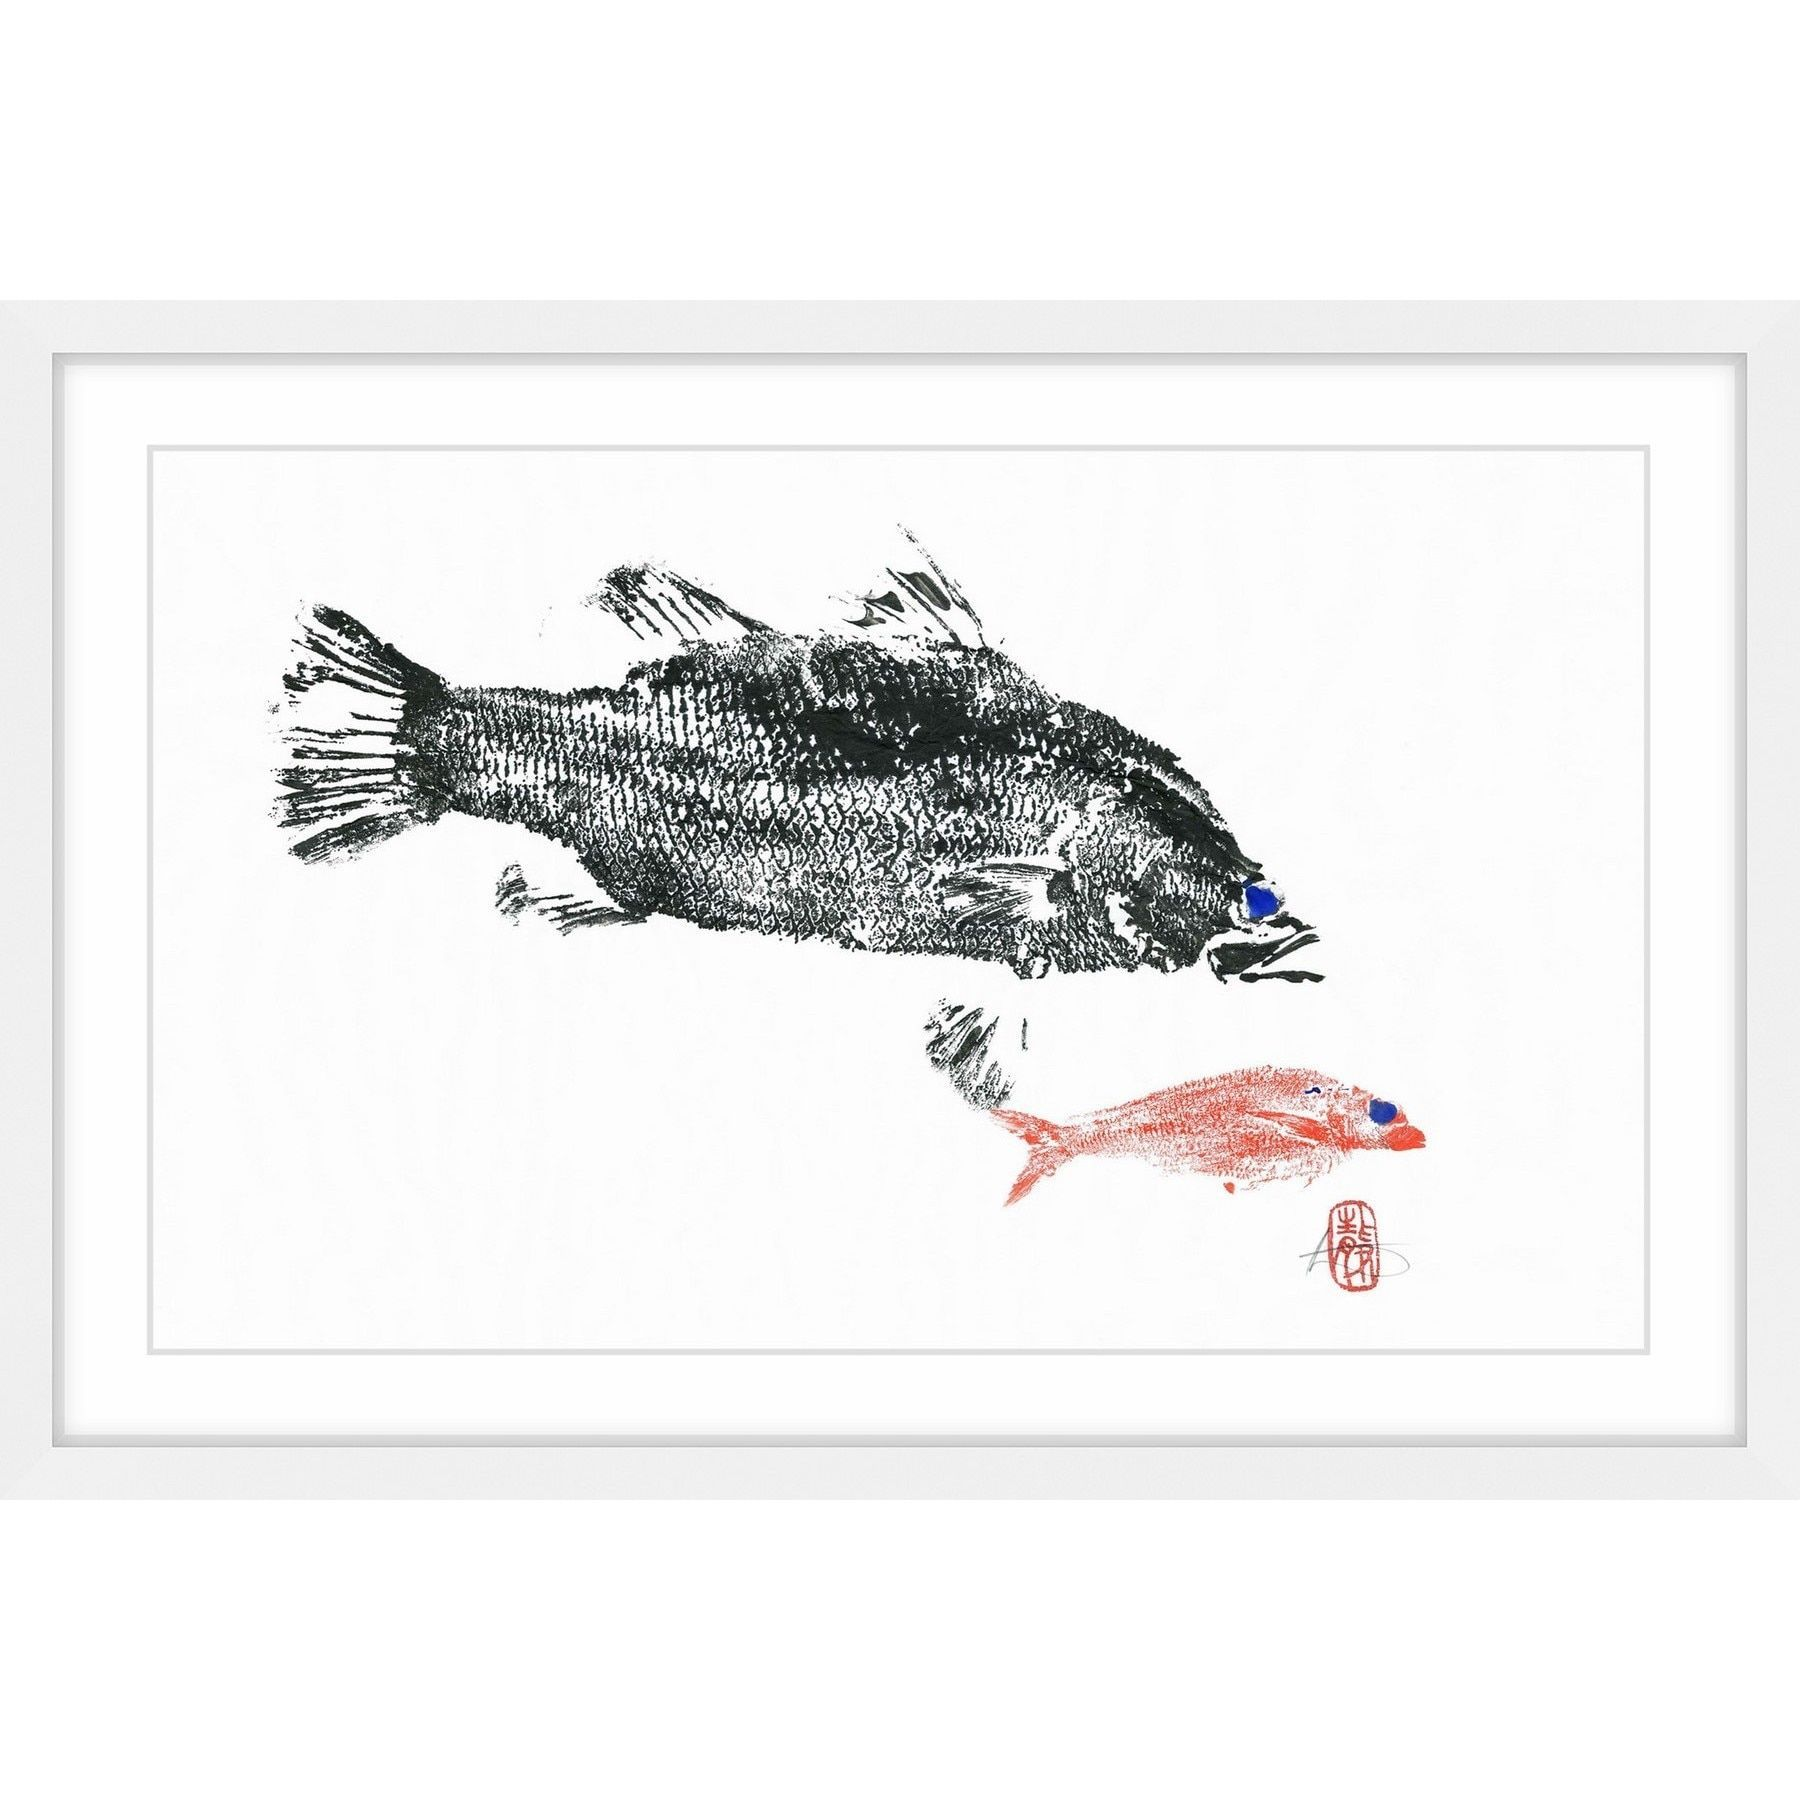 Barramundi Hunting\' Framed Painting Print | Products | Pinterest ...